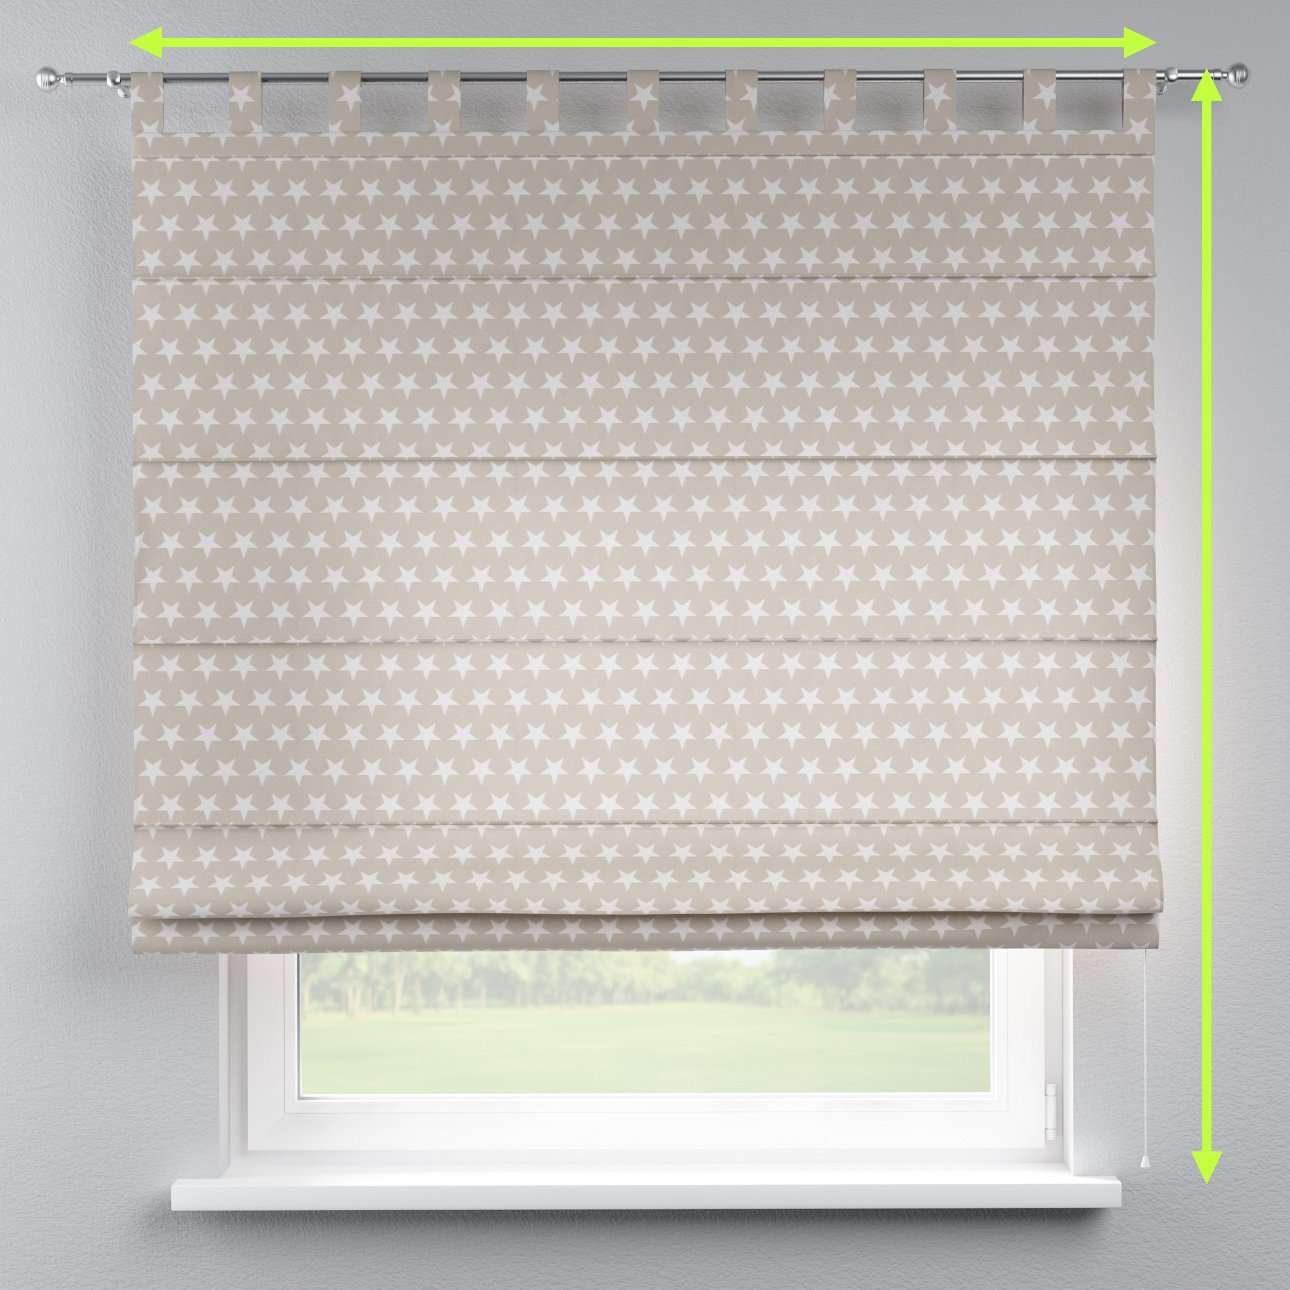 Verona tab top roman blind in collection Marina, fabric: 140-62